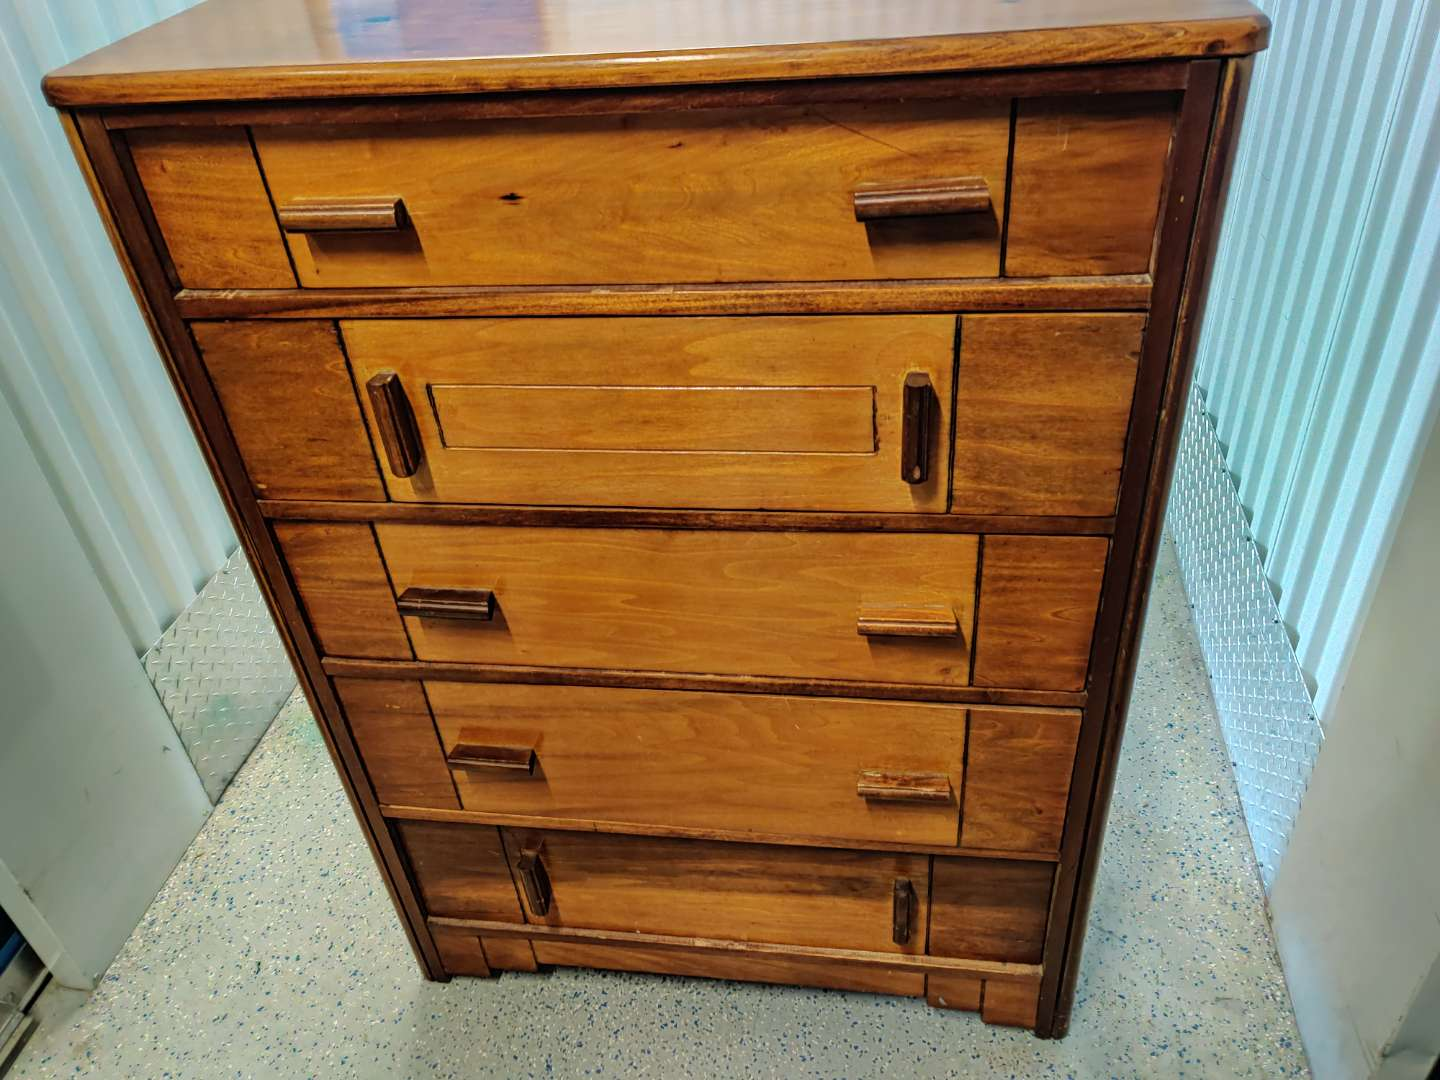 # 91 antique art Deco chest of drawers five drawers 45.5 in tall 33 in wide